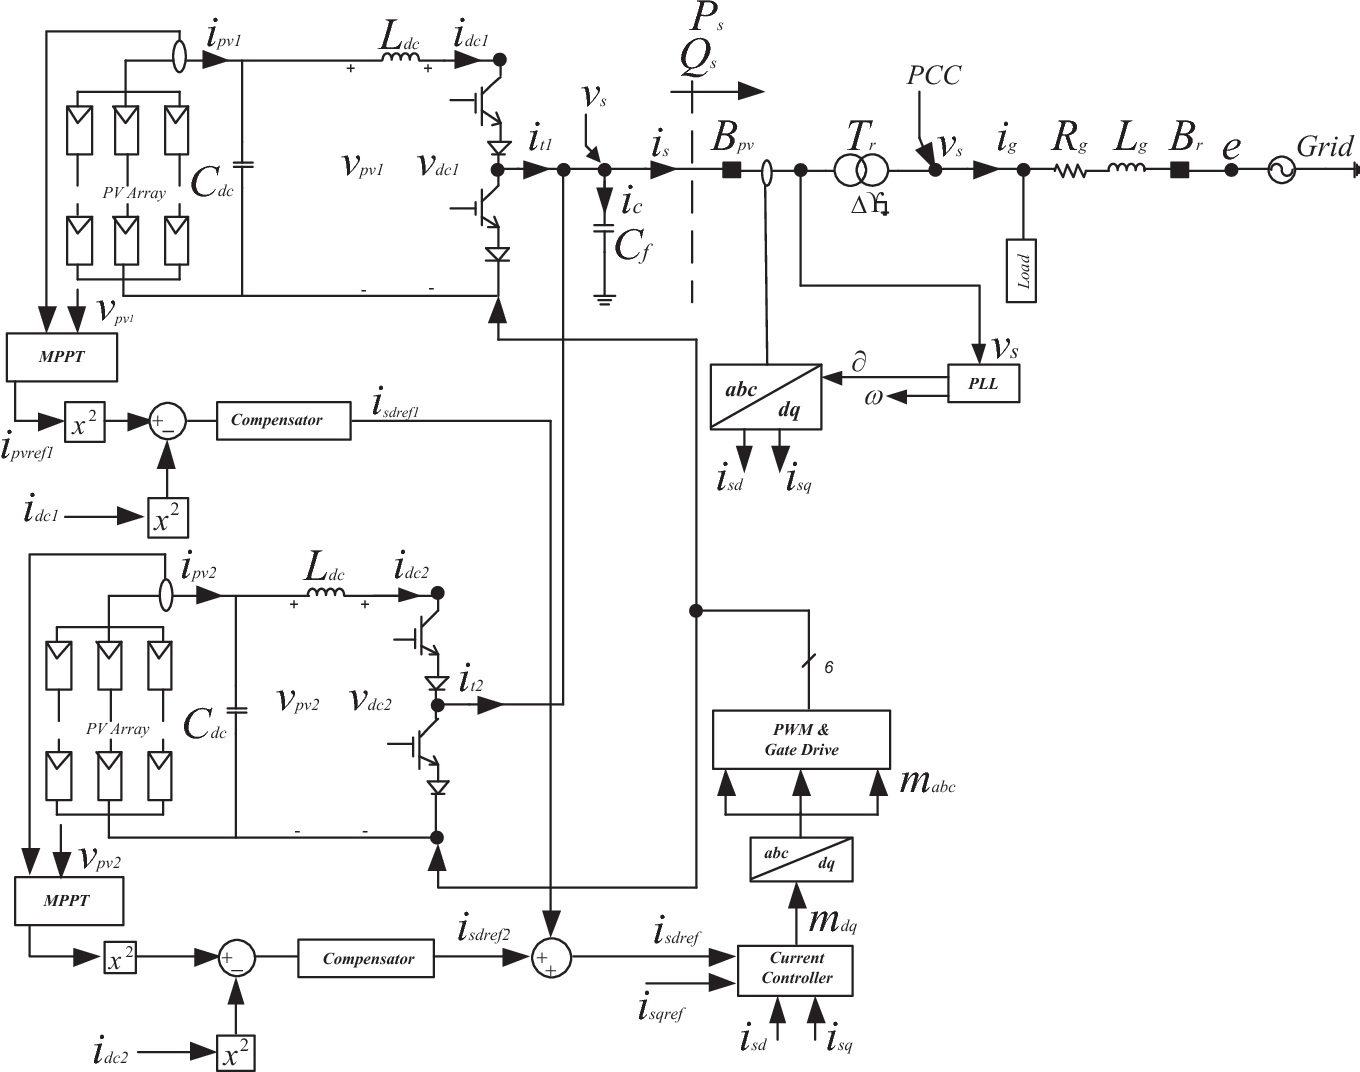 hight resolution of single line schematic diagram of the three phase multi